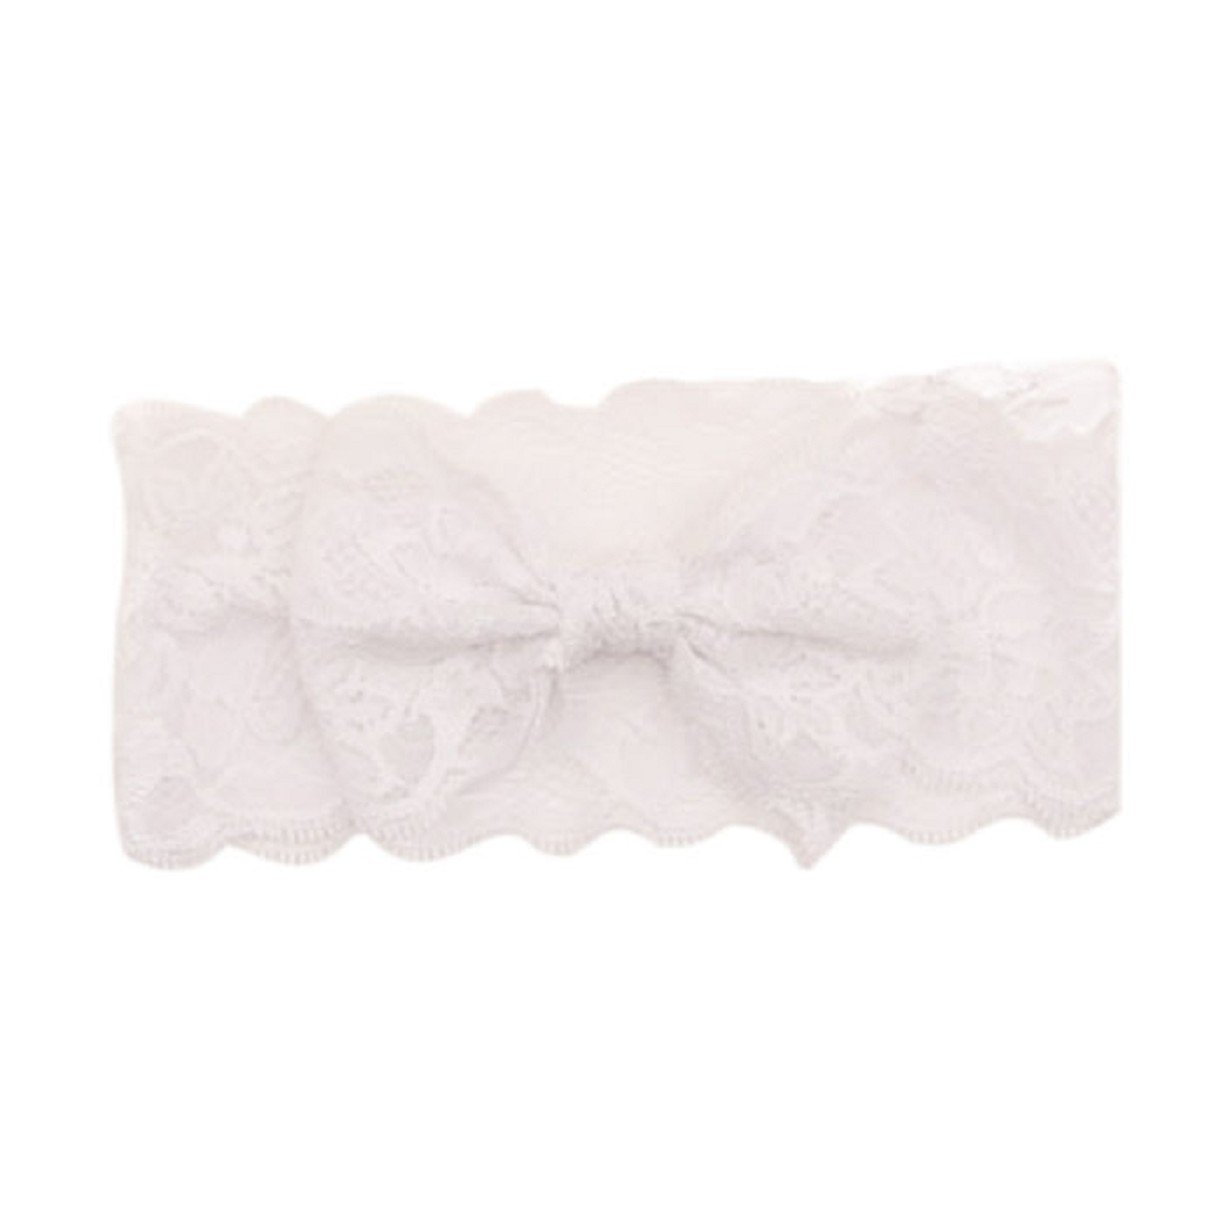 Vovotrade Fashion Lace Big Bow Hair Band; Baby Head Band Accessories (White)